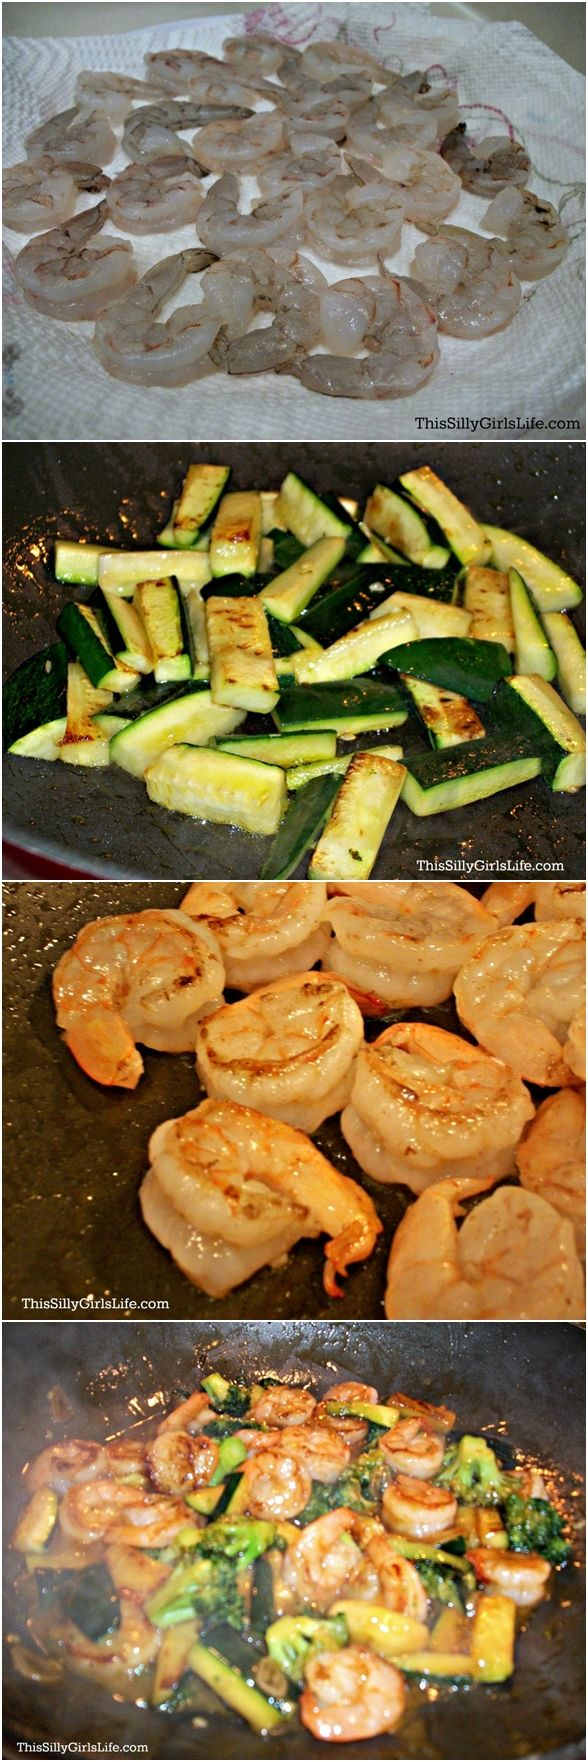 Honey Garlic Shrimp Stir-Fry | RecipesPedia.org